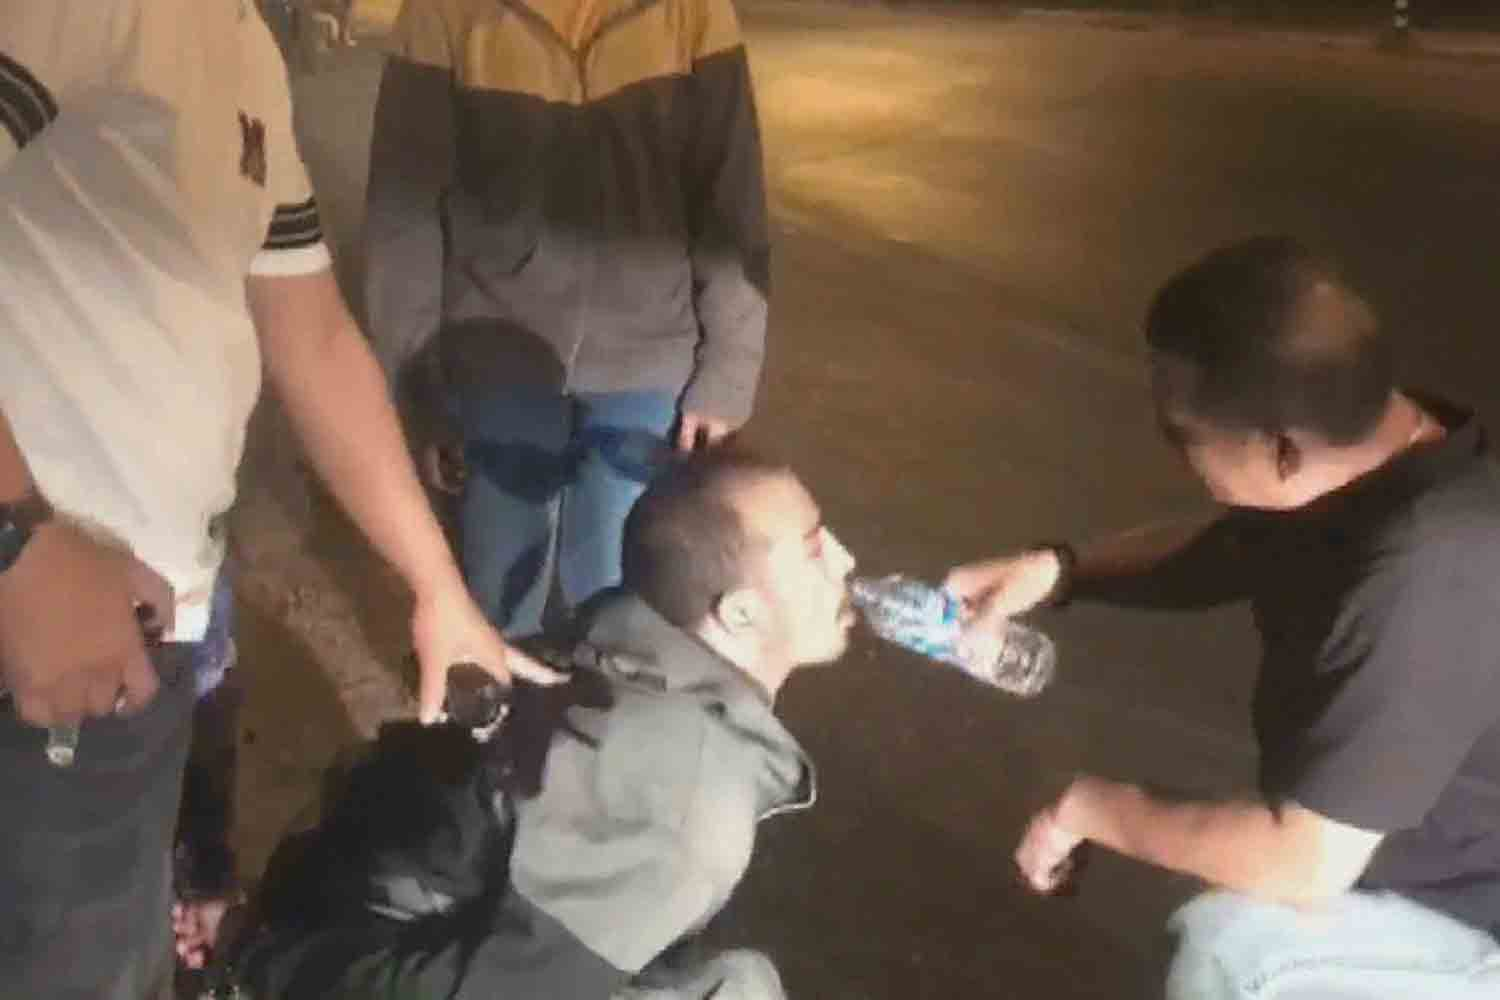 A police officer gives Mulatib, the last of the seven illegal migrants on the run, some water after he was recaptured on the ring road of Mukdahan town late on Monday night. (Photo supplied)